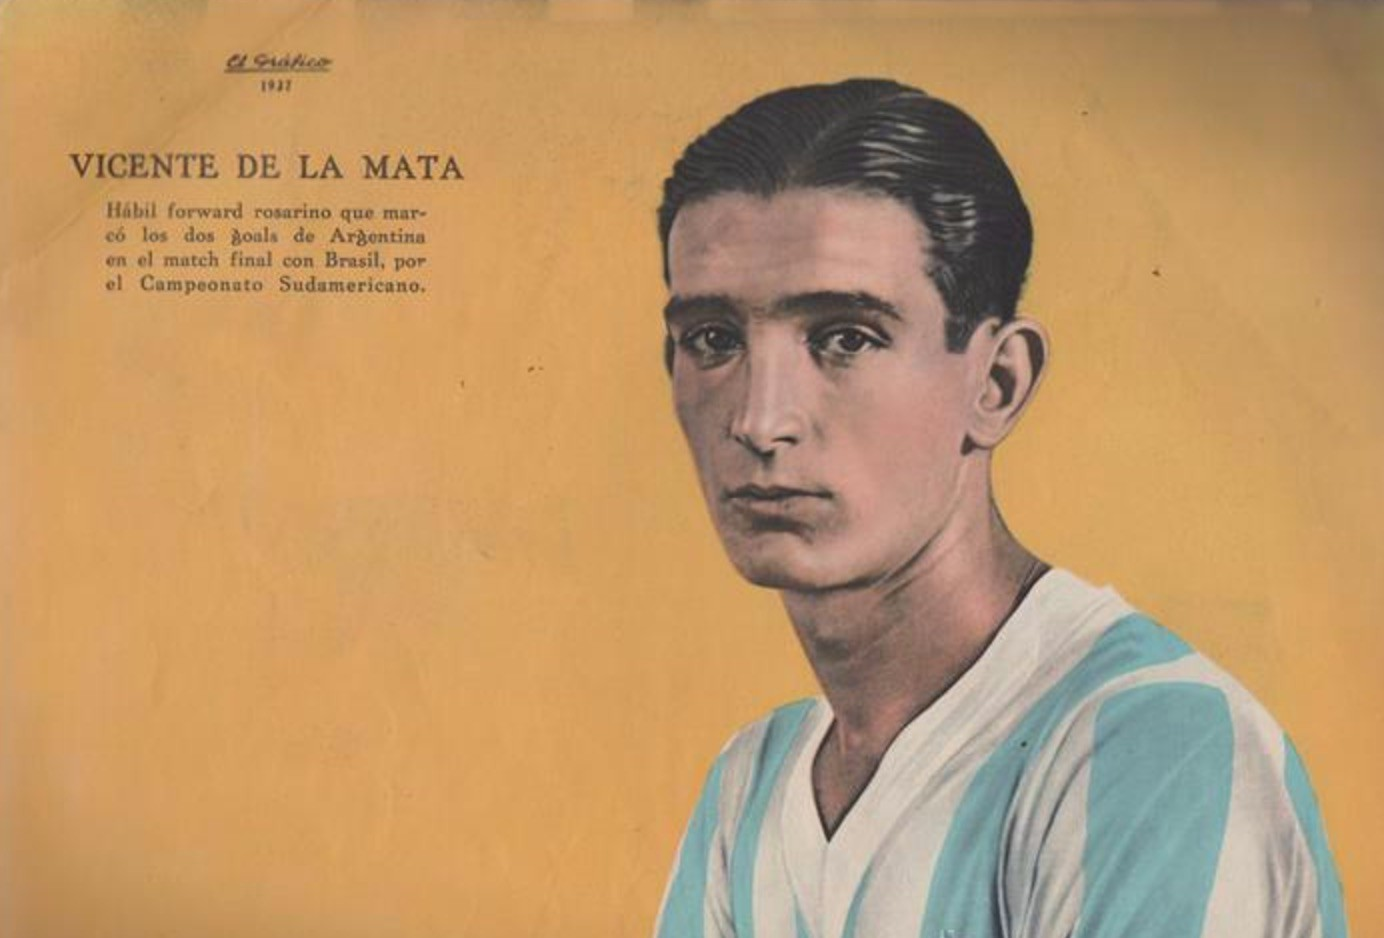 1937 South American Championship Final